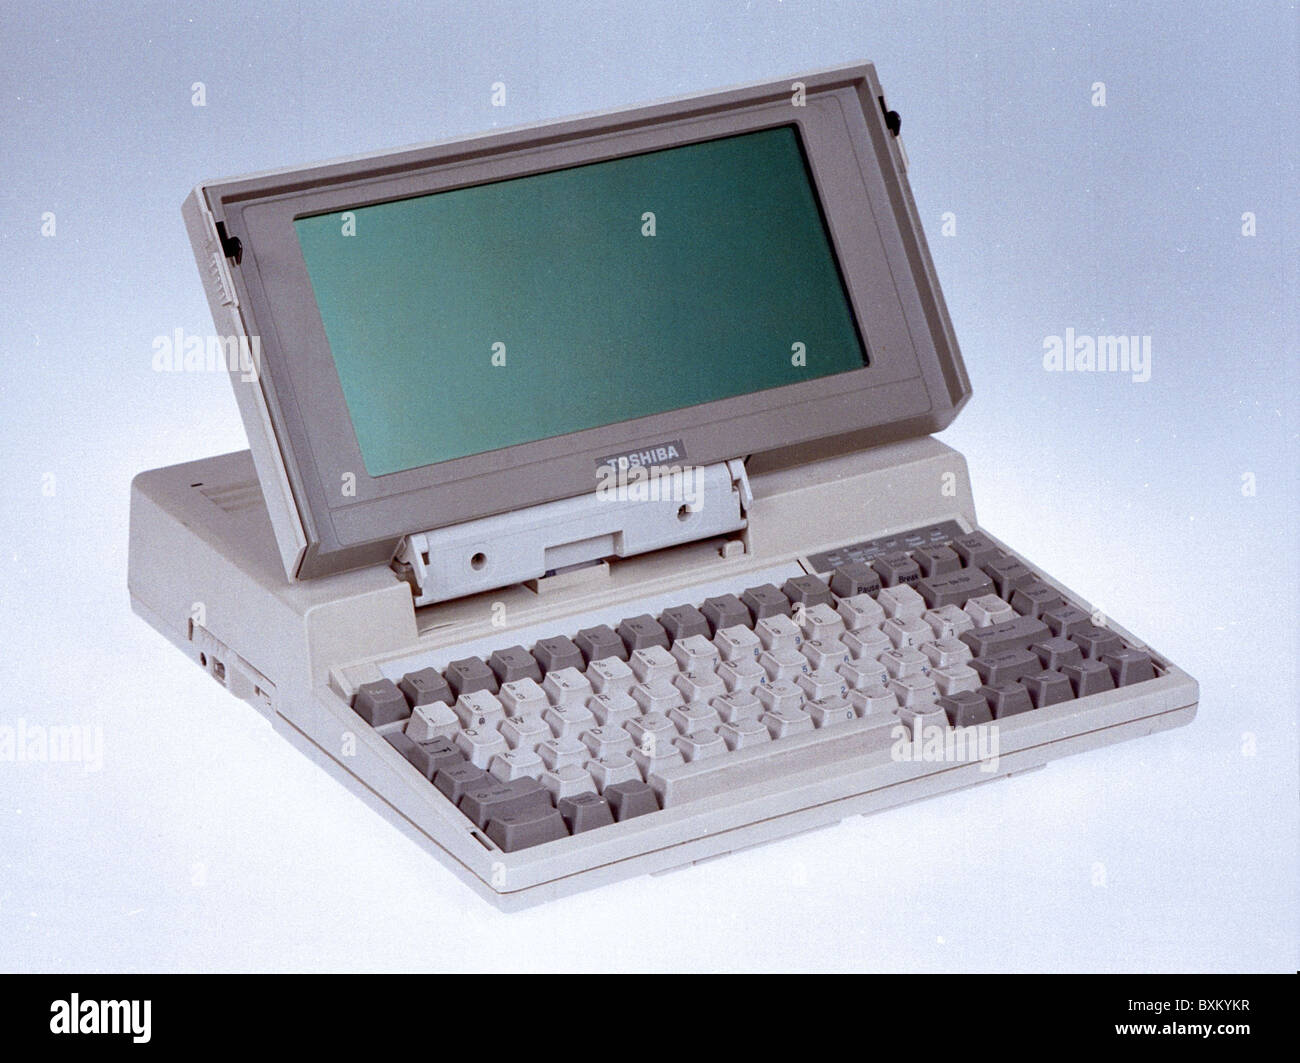 computing / electronics, computer, notebook, Toshiba T1200, Japan, 1986, historic, historical, 1980s, 80s, 20th - Stock Image